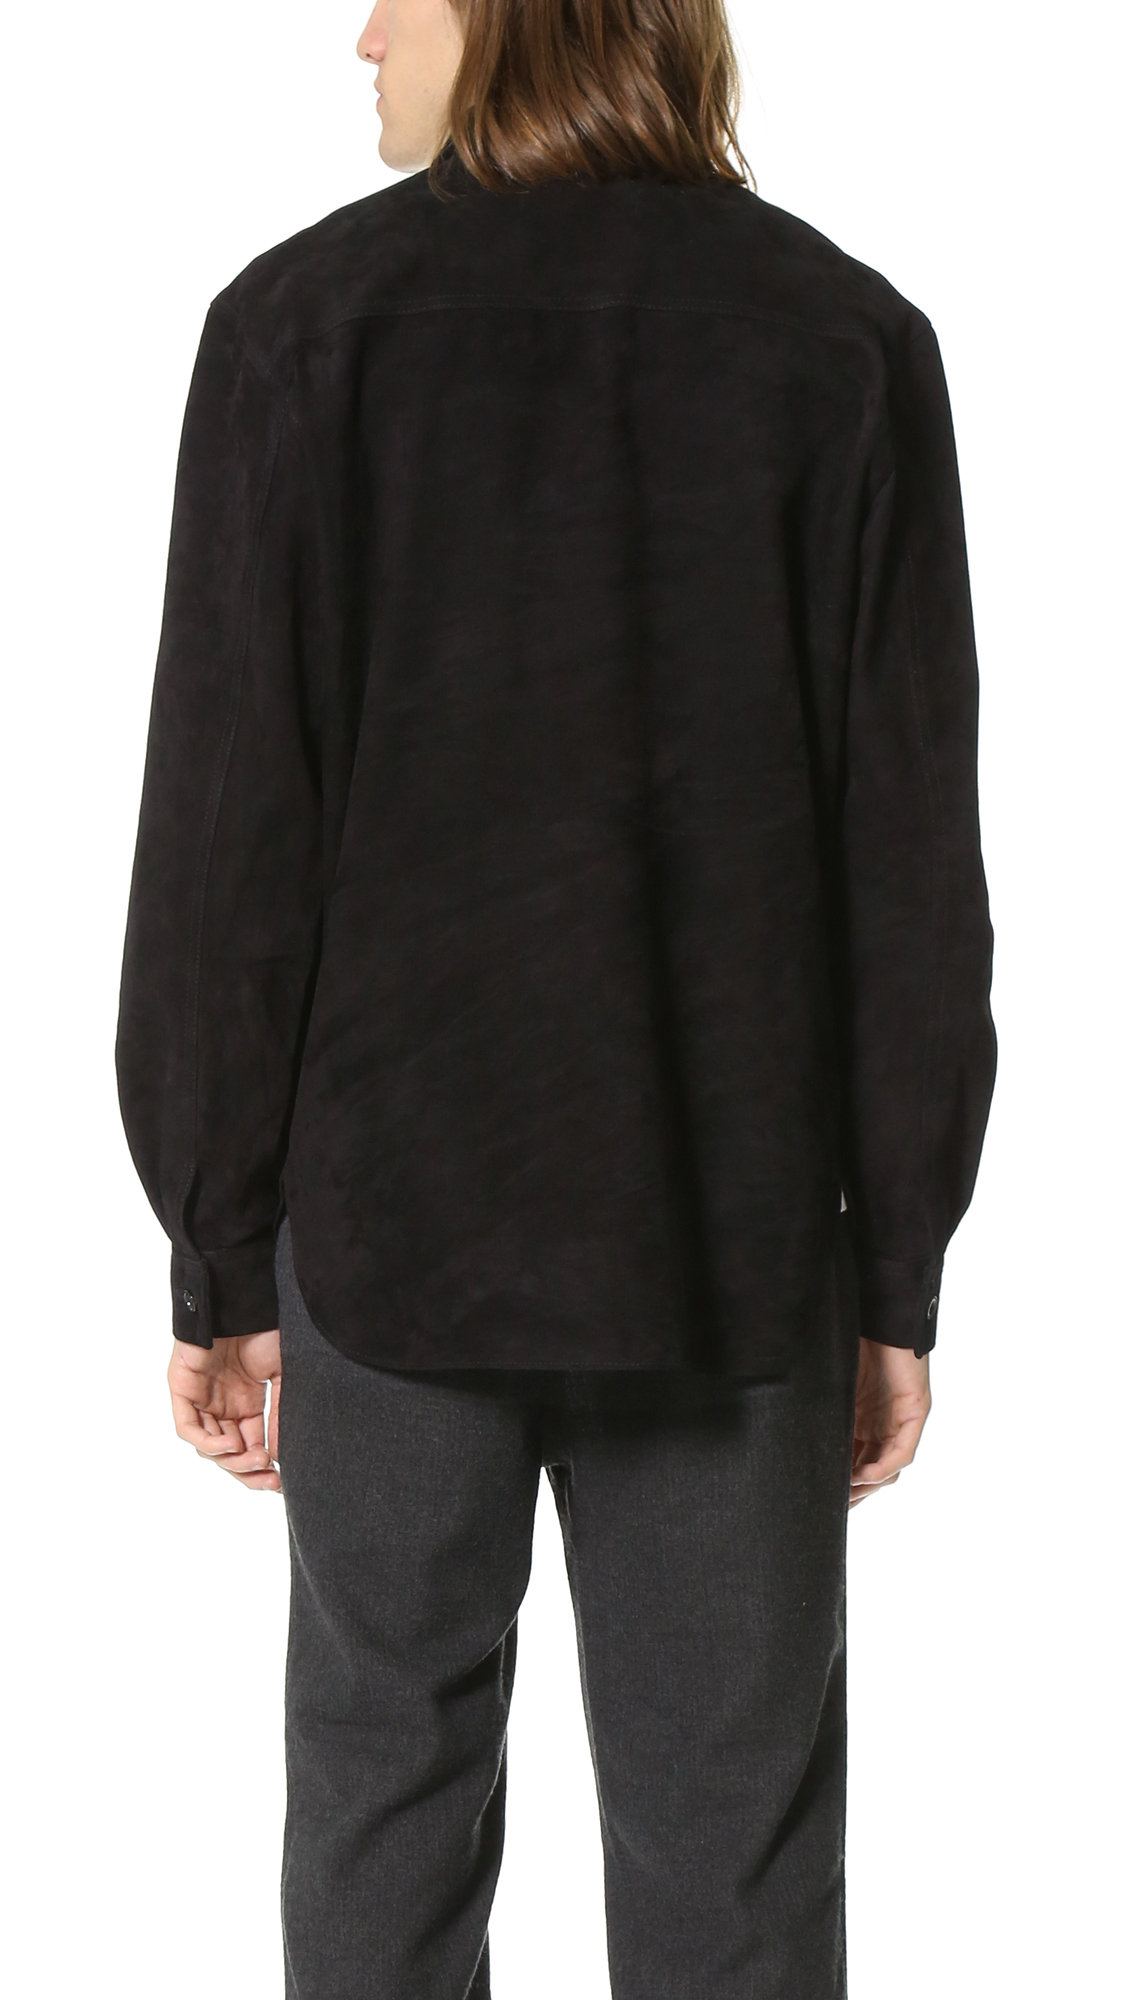 7d1cefe32047 Lyst - Our Legacy Suede Shawl Zip Shirt in Black for Men